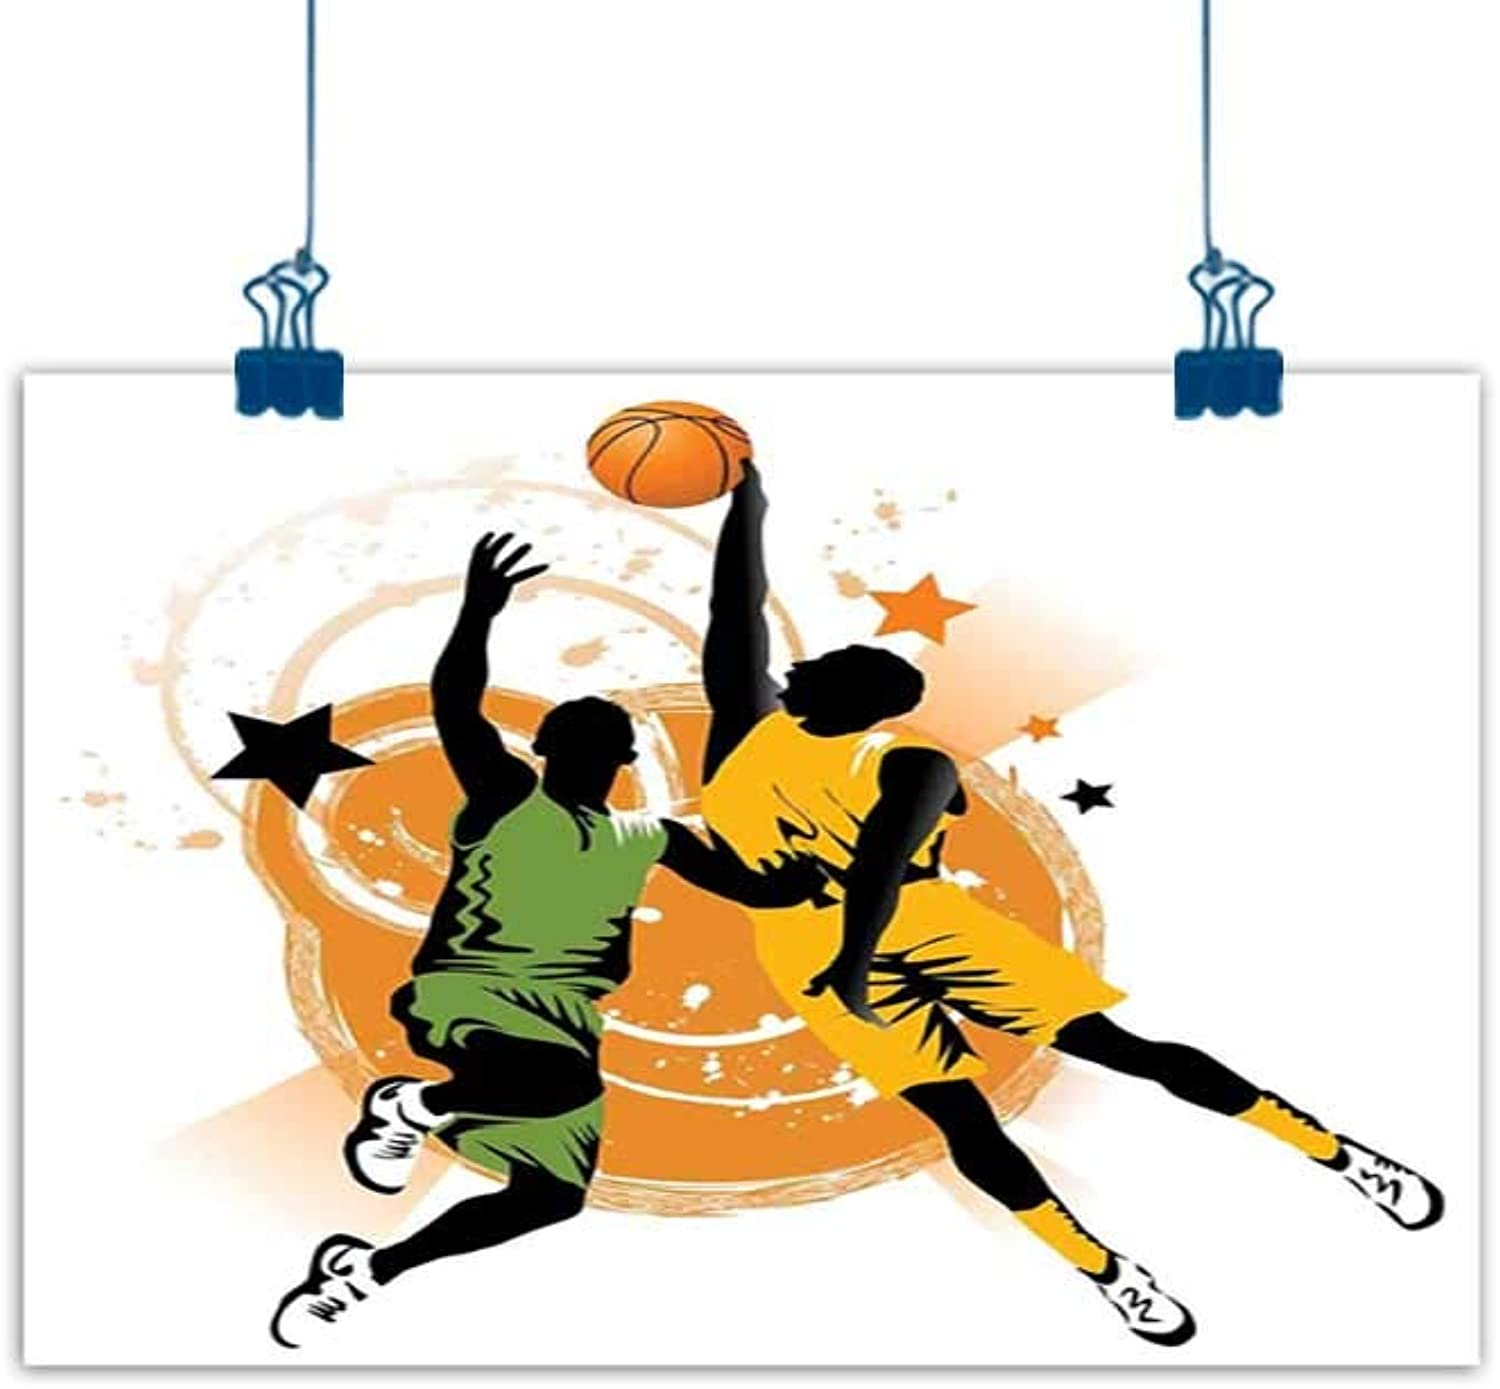 Wall Painting Prints Sports Decor,Image of Two Basketball Players in A Heated Game Rings Stars in The Background Print,orange Green for Boys Room Baby Nursery Wall Decor Kids Room Boys Gift 48 x32